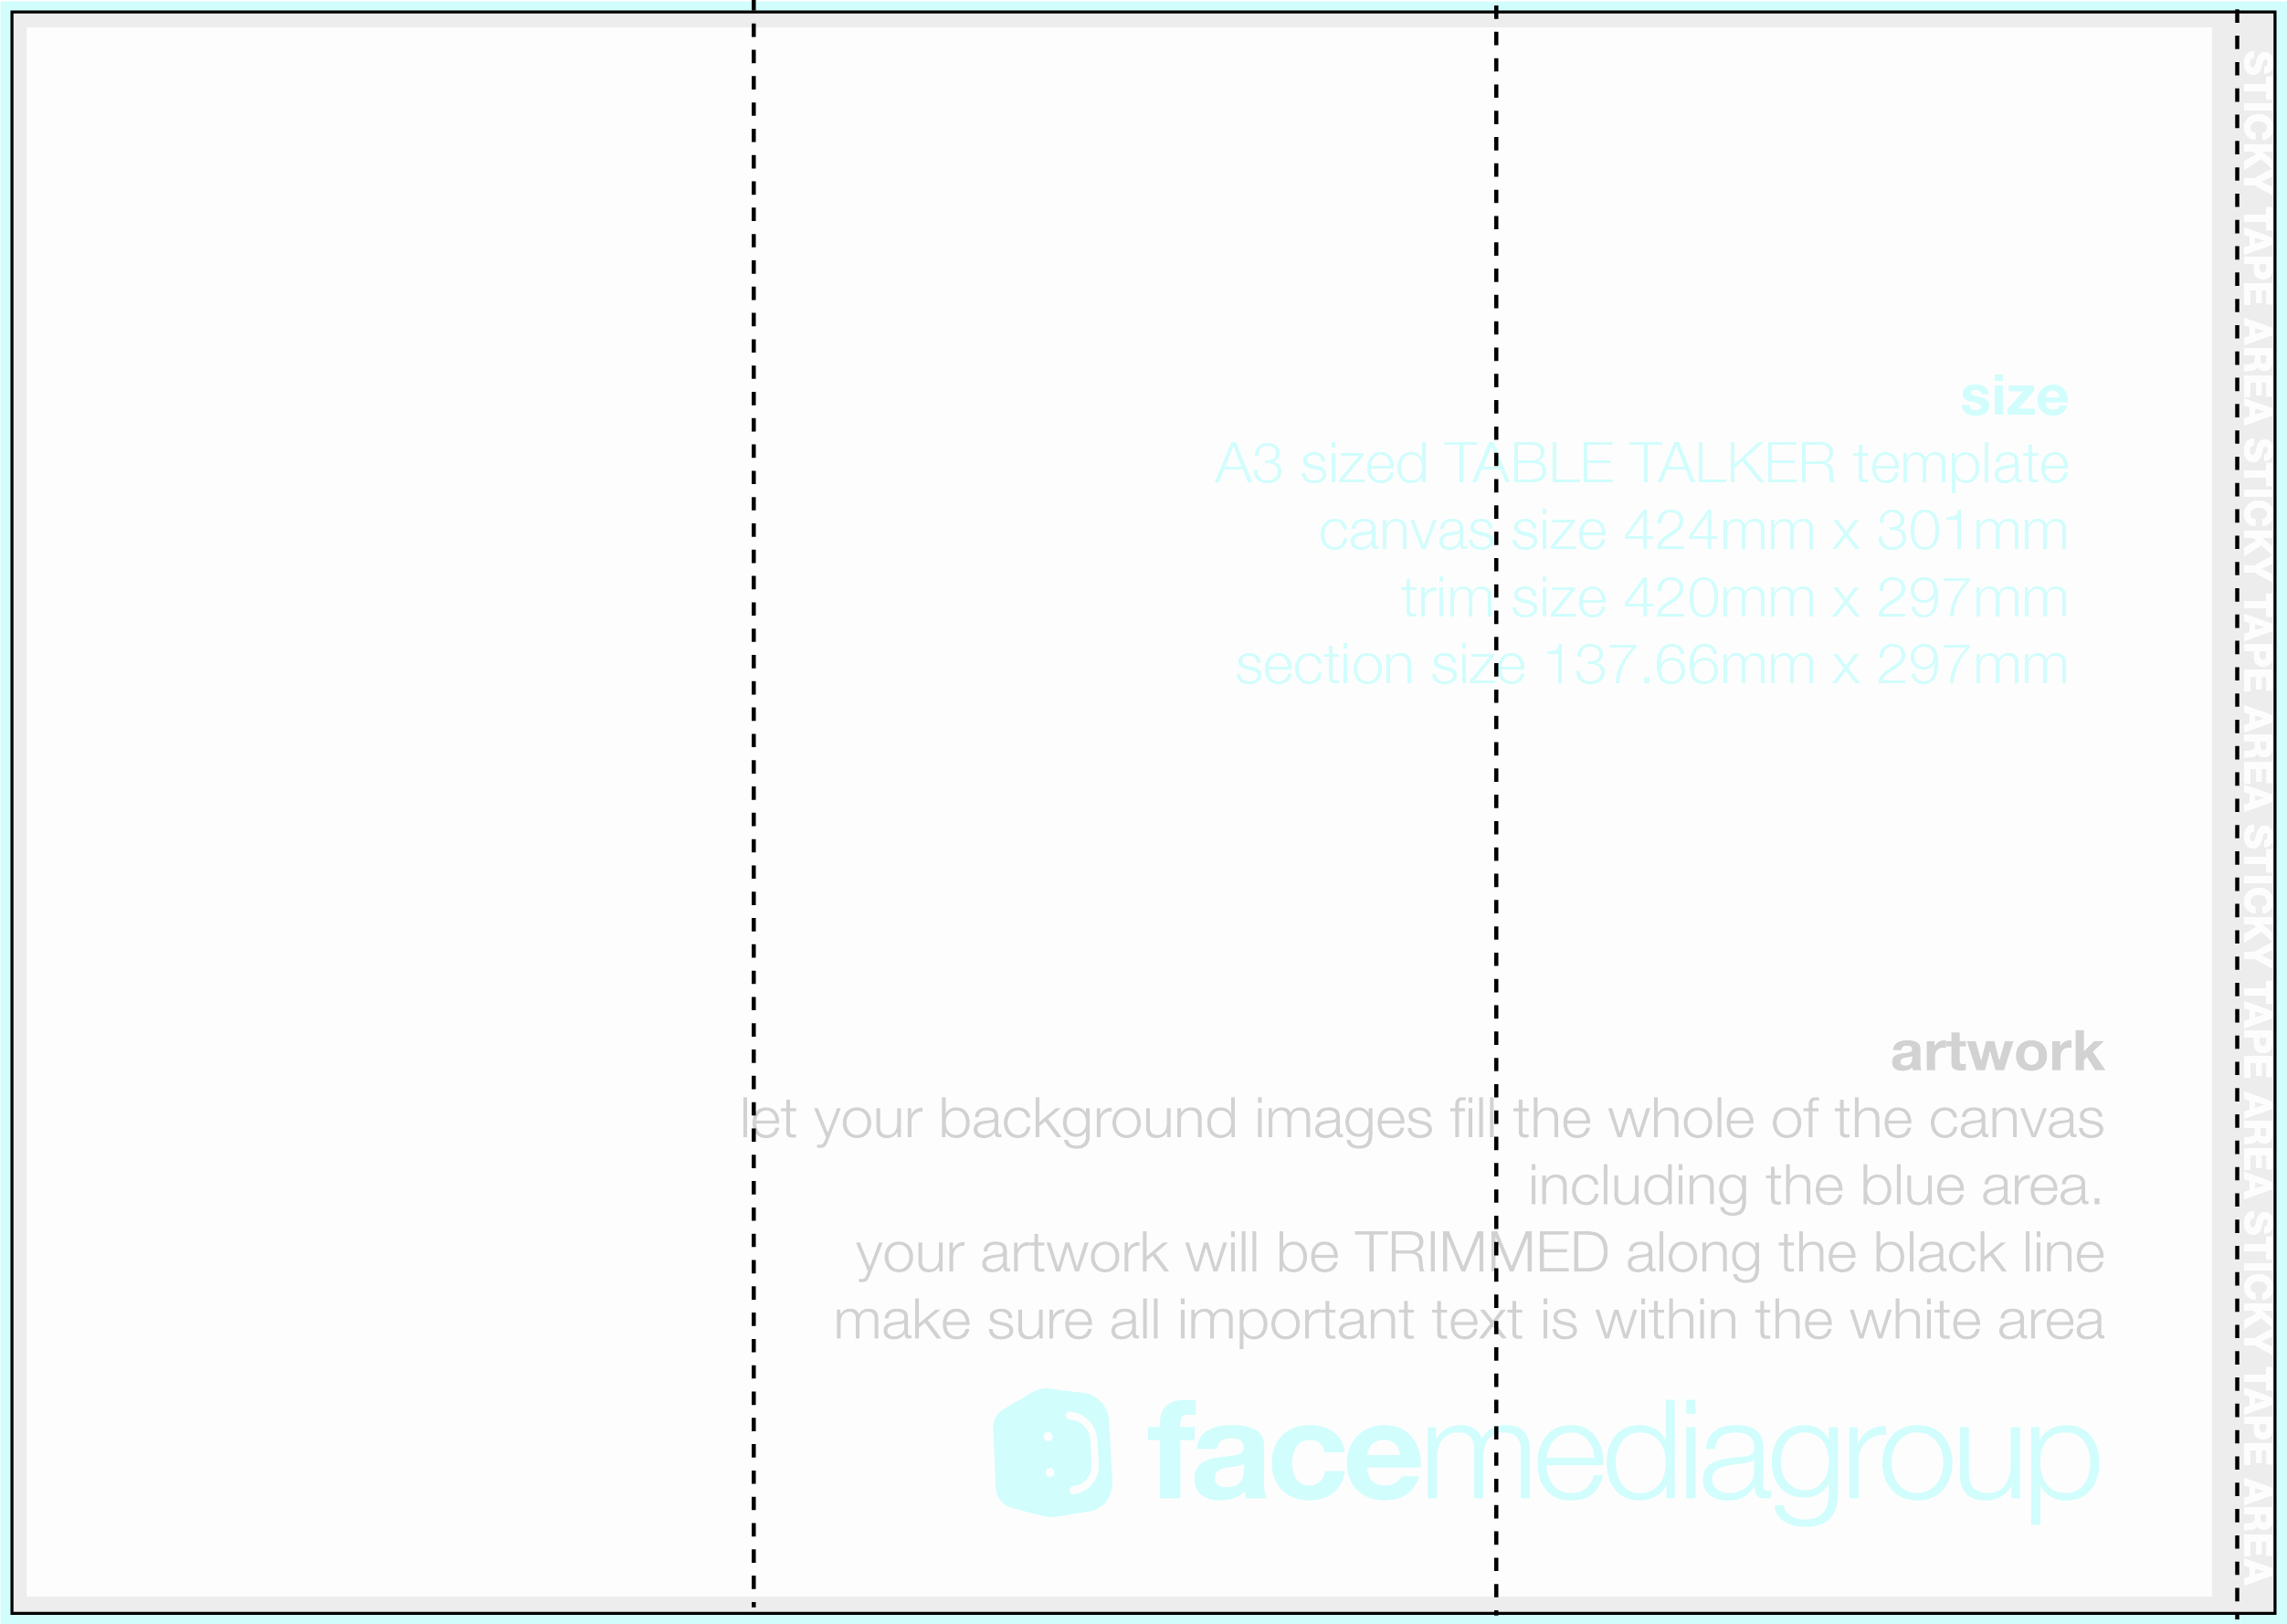 A4 Tri Fold Brochure Template Awesome Blank Brochure Templates A4